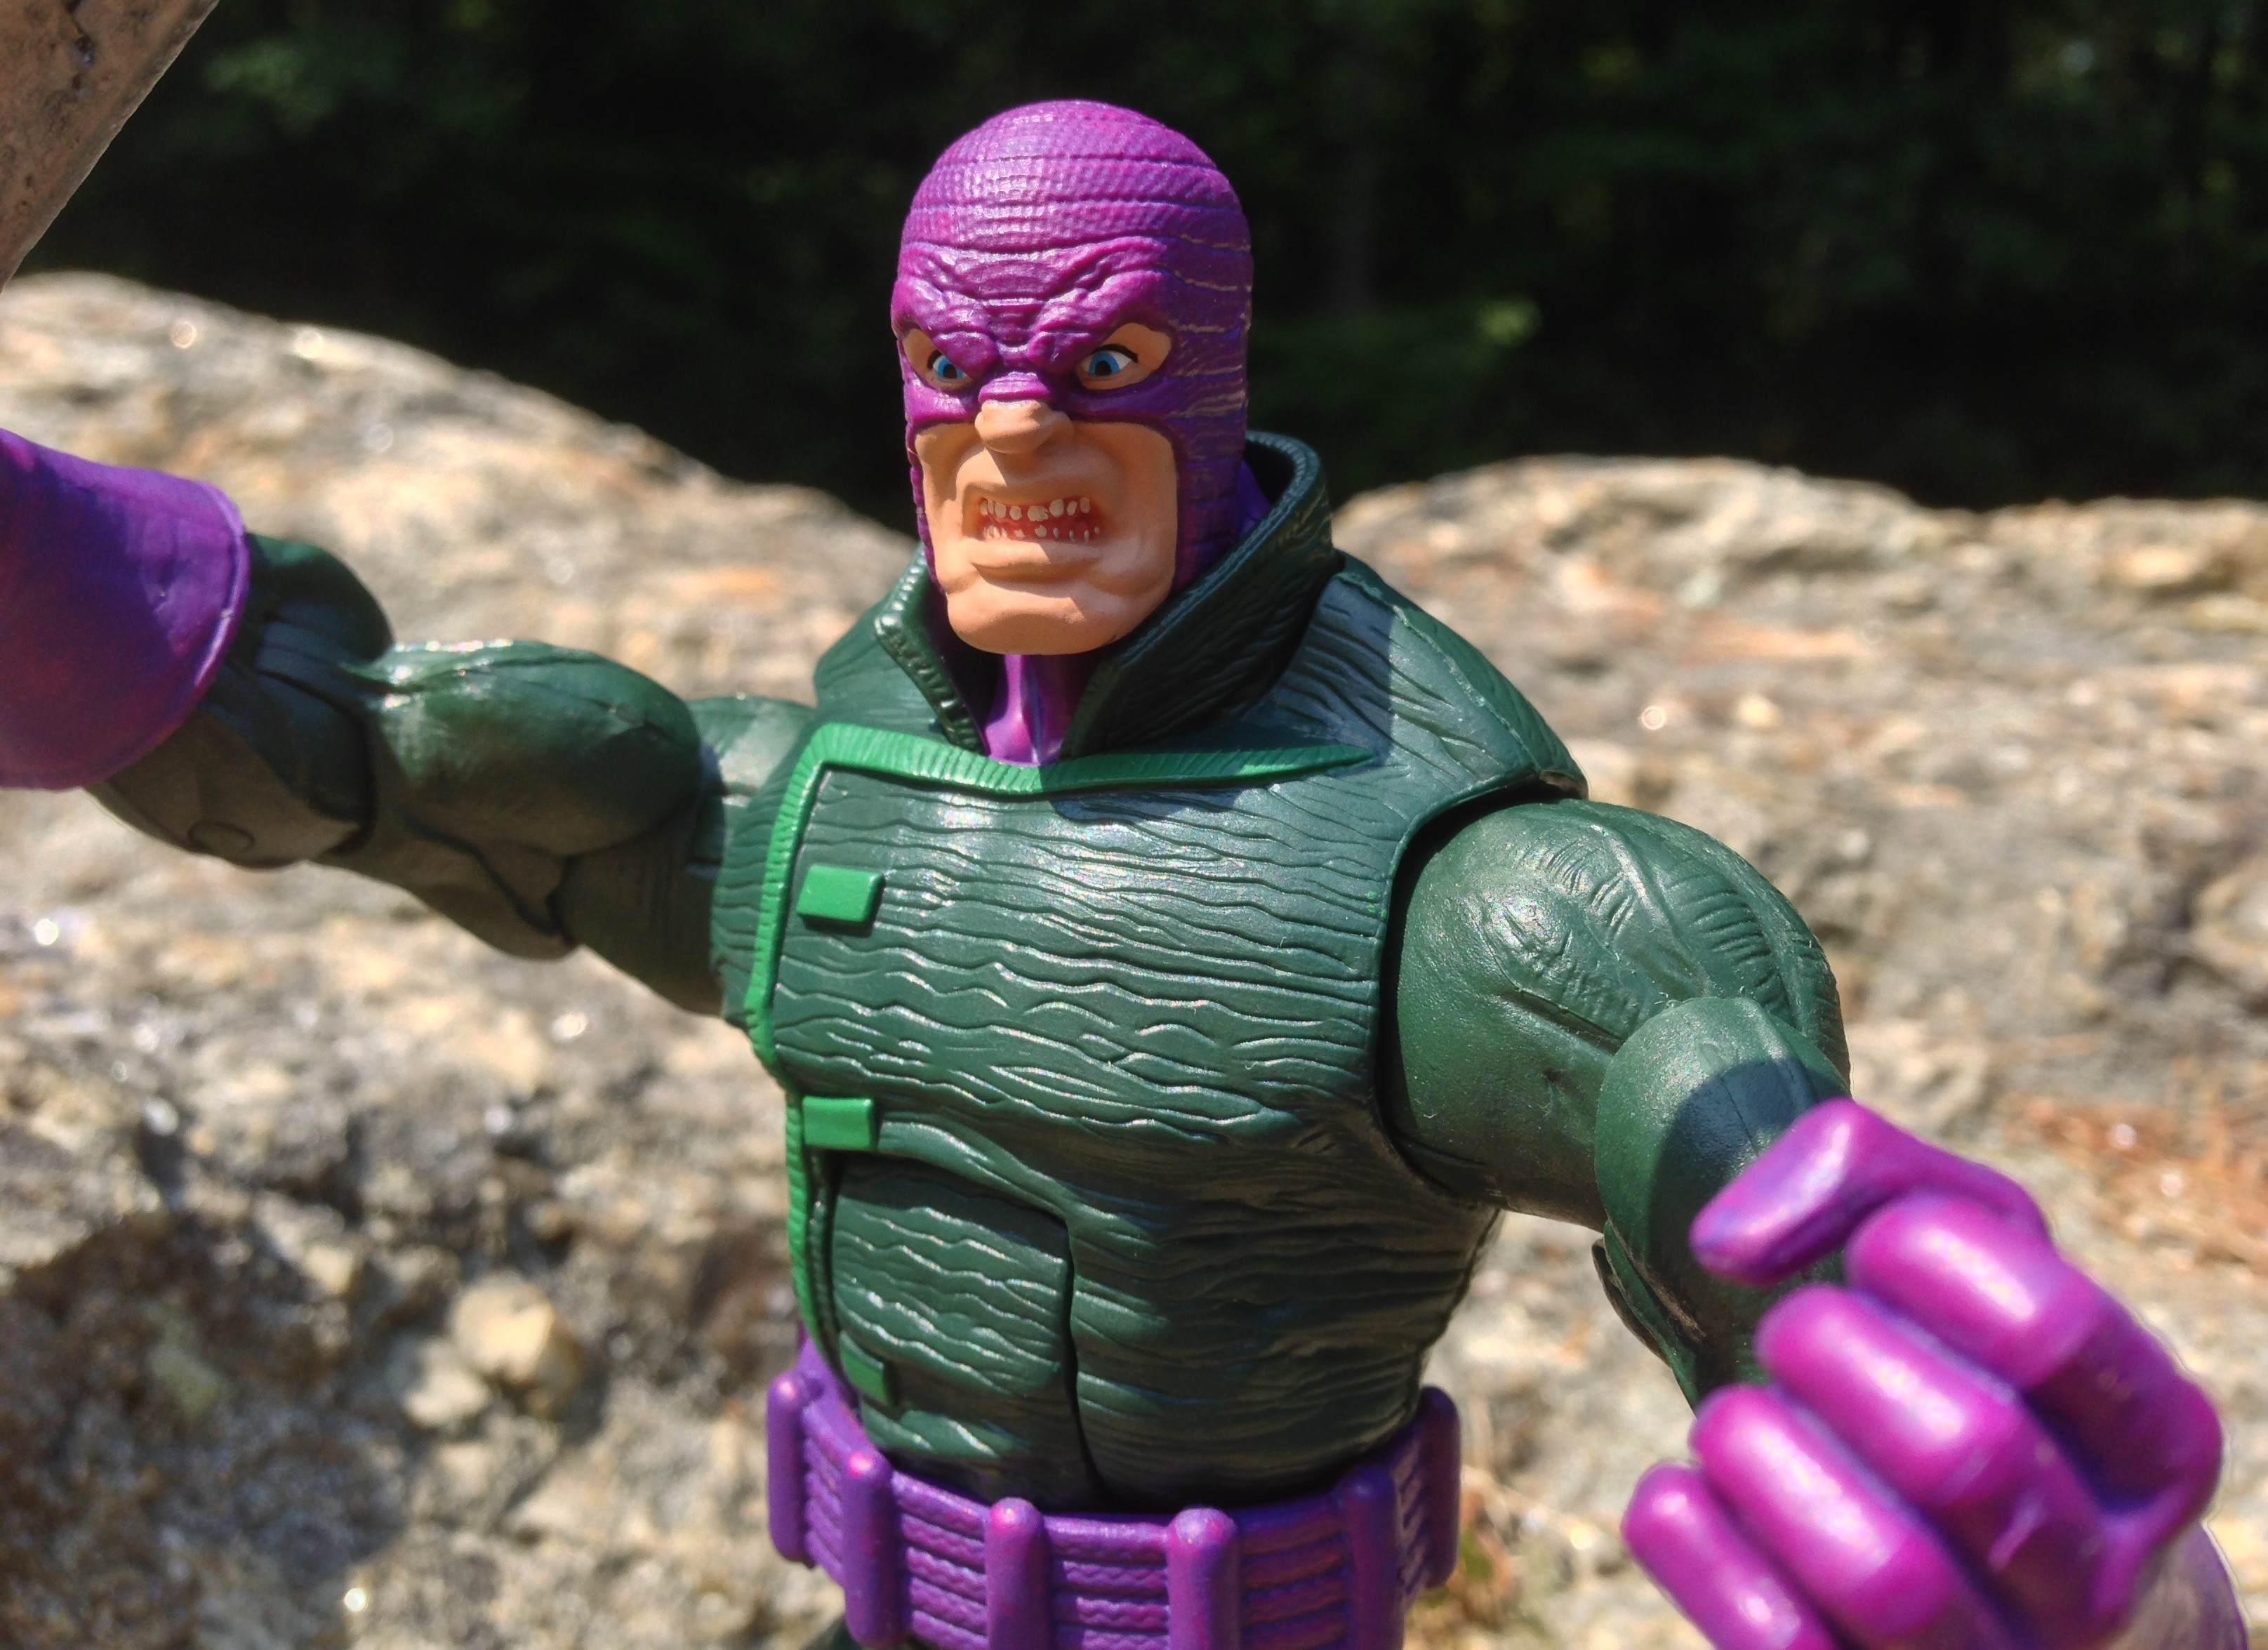 2013 Marvel Legends Wrecker Figure Close-Up